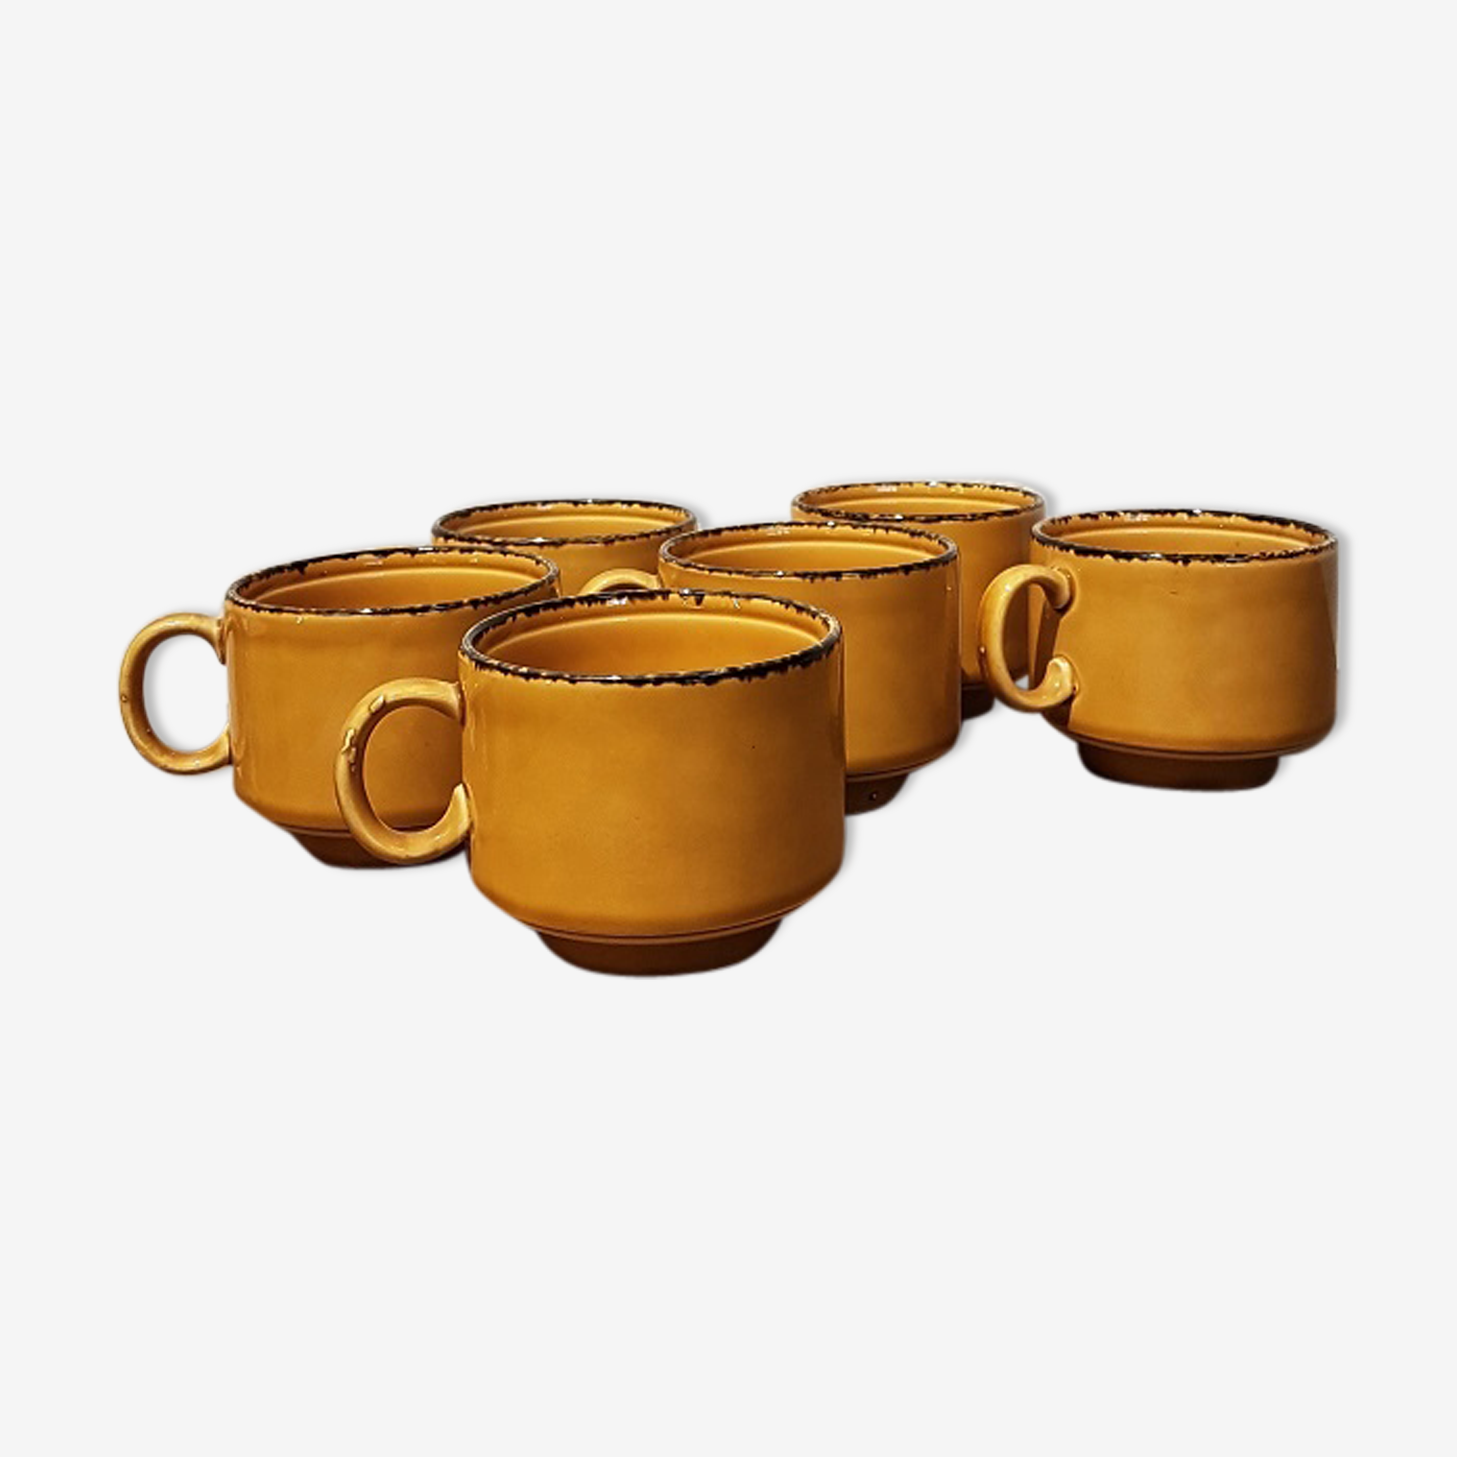 Set of 6 cups Pagnossin Treviso Italy